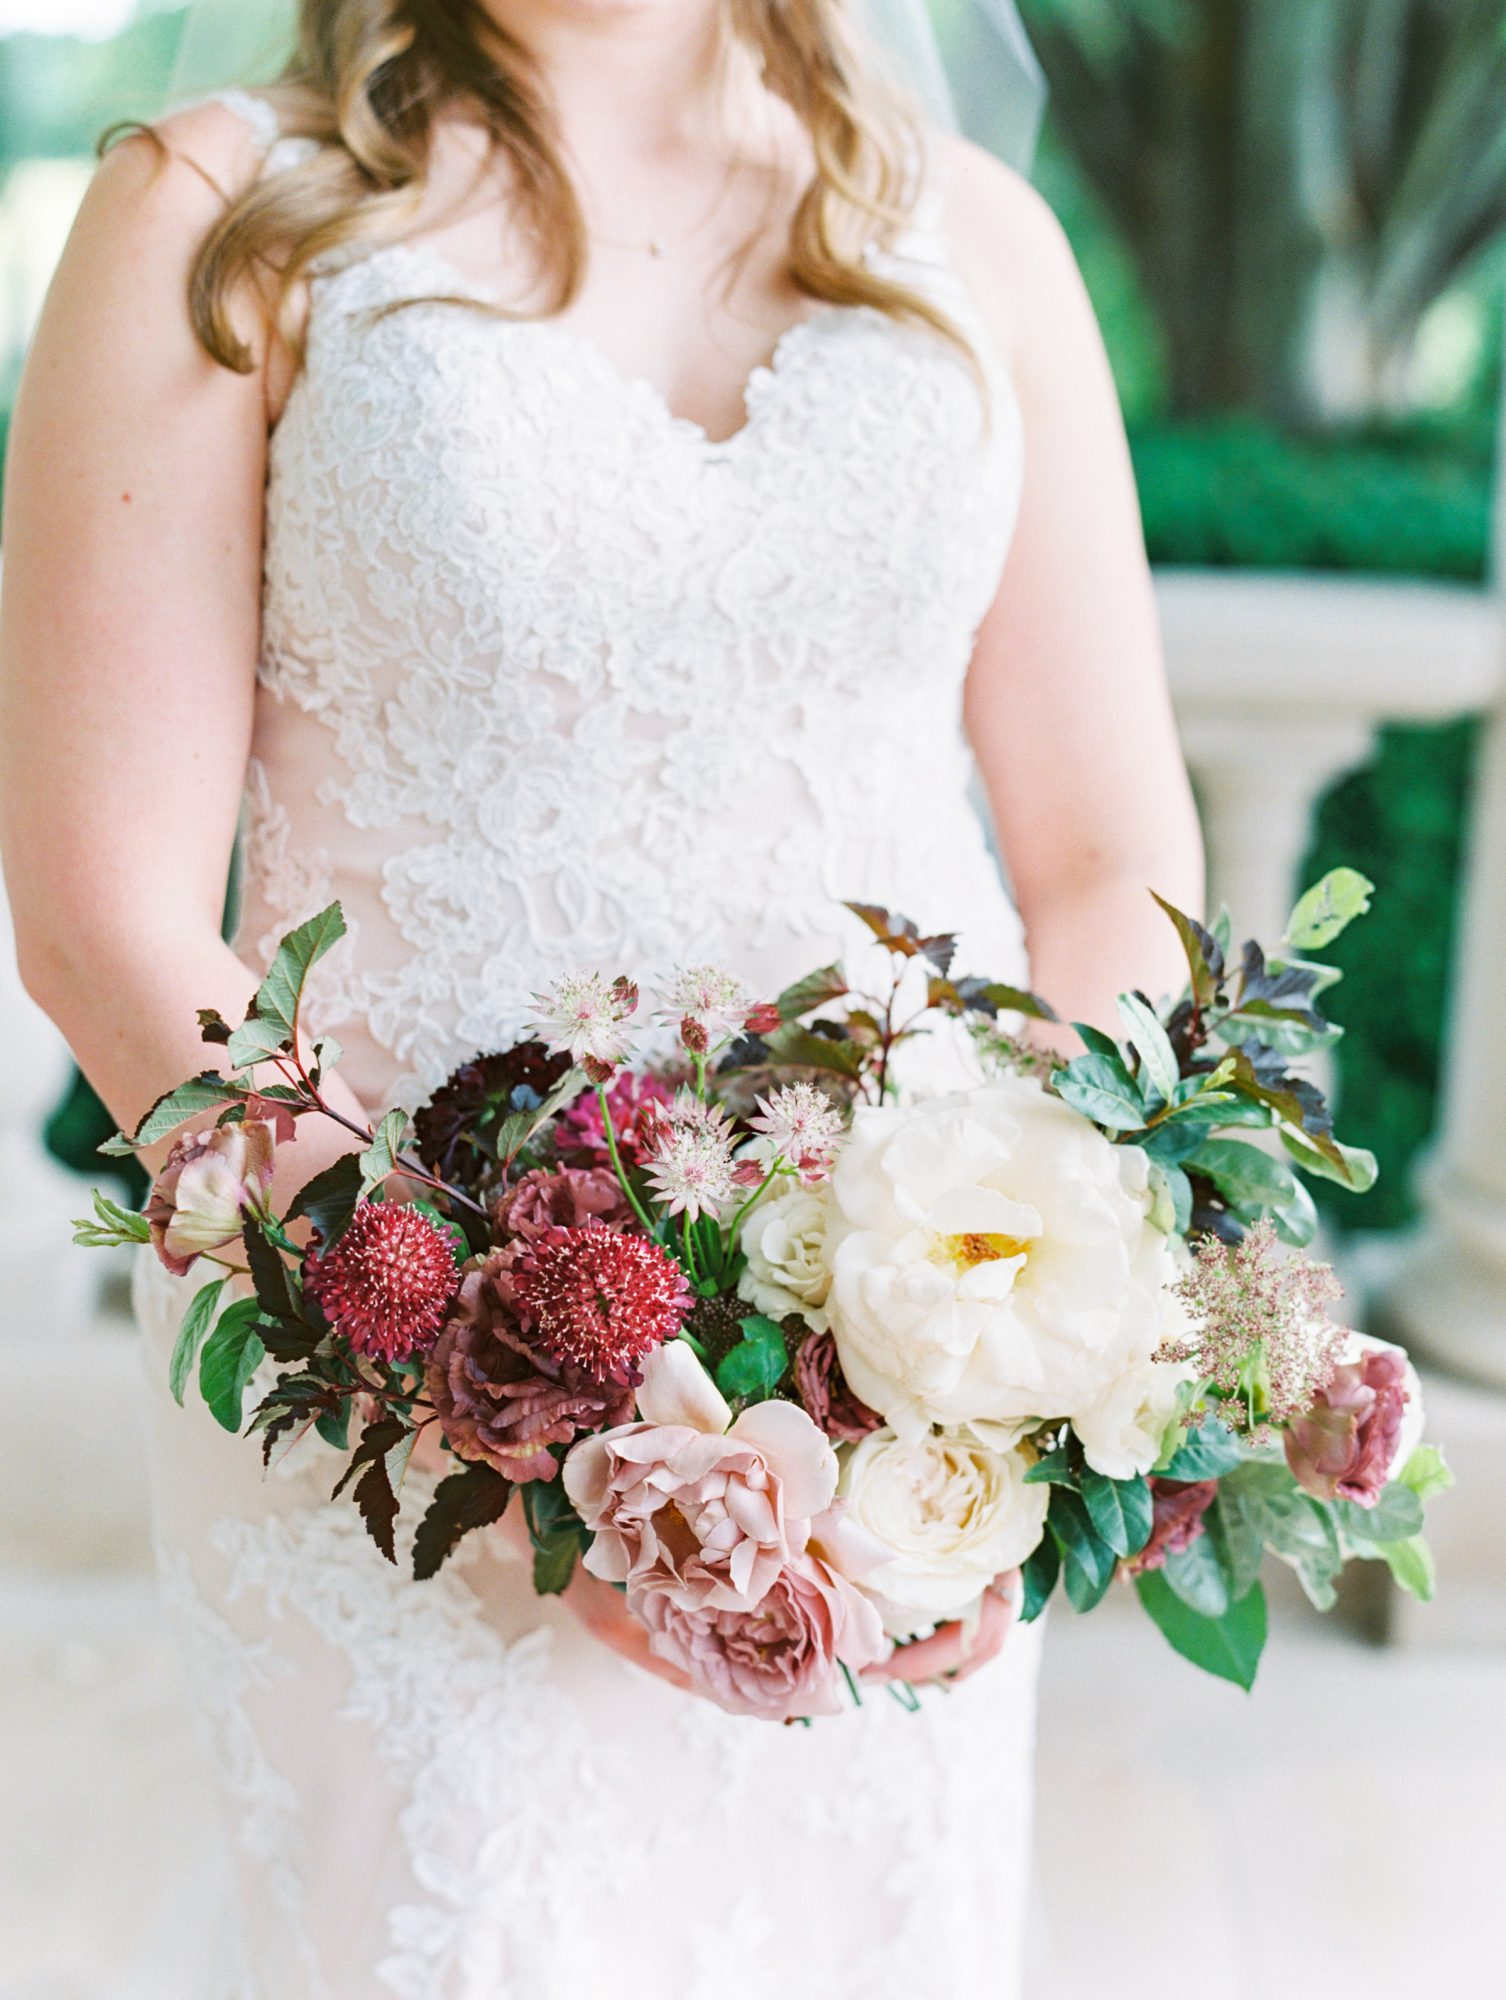 katelyn jose wedding bride in dress holding floral bouquet